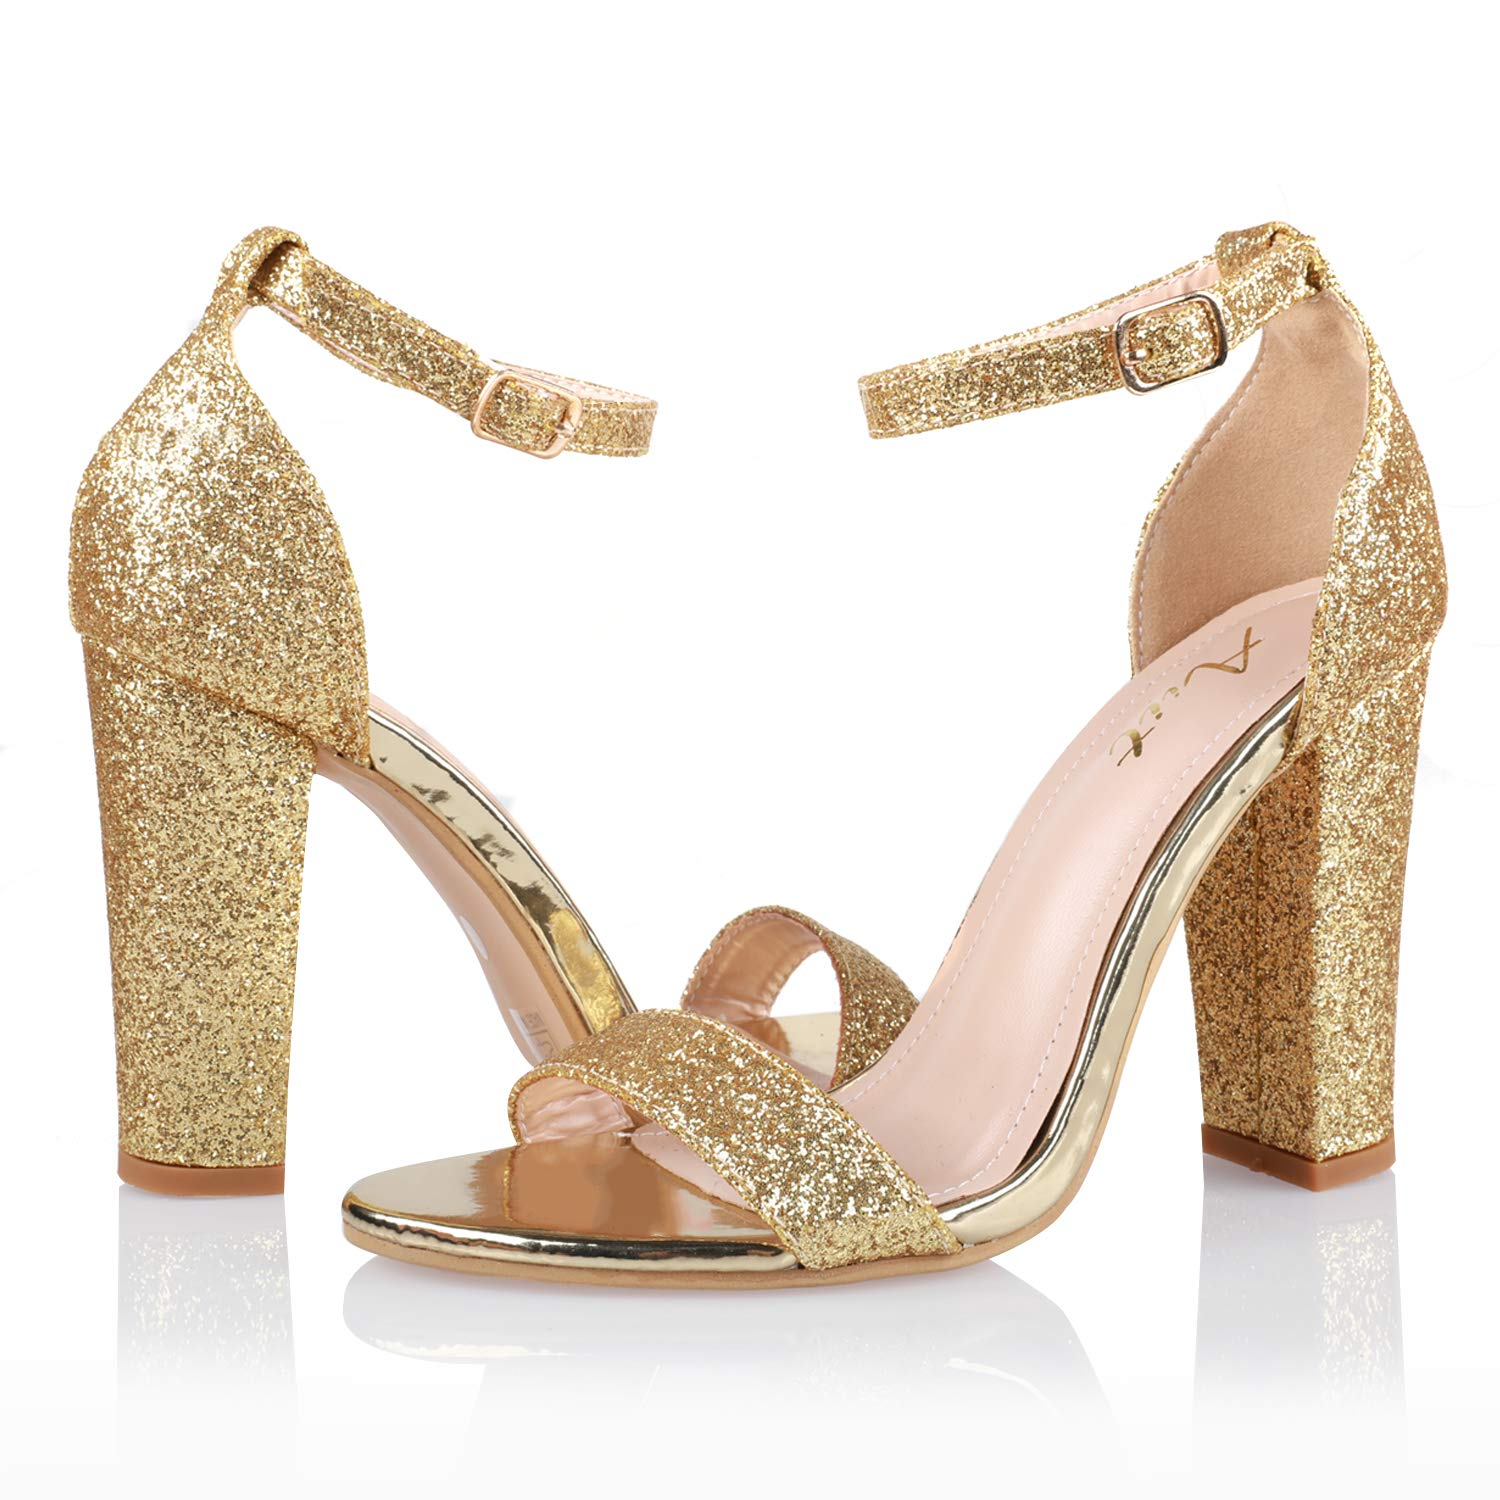 Dress Size Chunky Heel Heels Aiit Shoes Gold Sparkling High Sandals Pumps 9 Gatsby Block Stiletto Women's Party For 1920s Fashion Women lT5FKuJc13